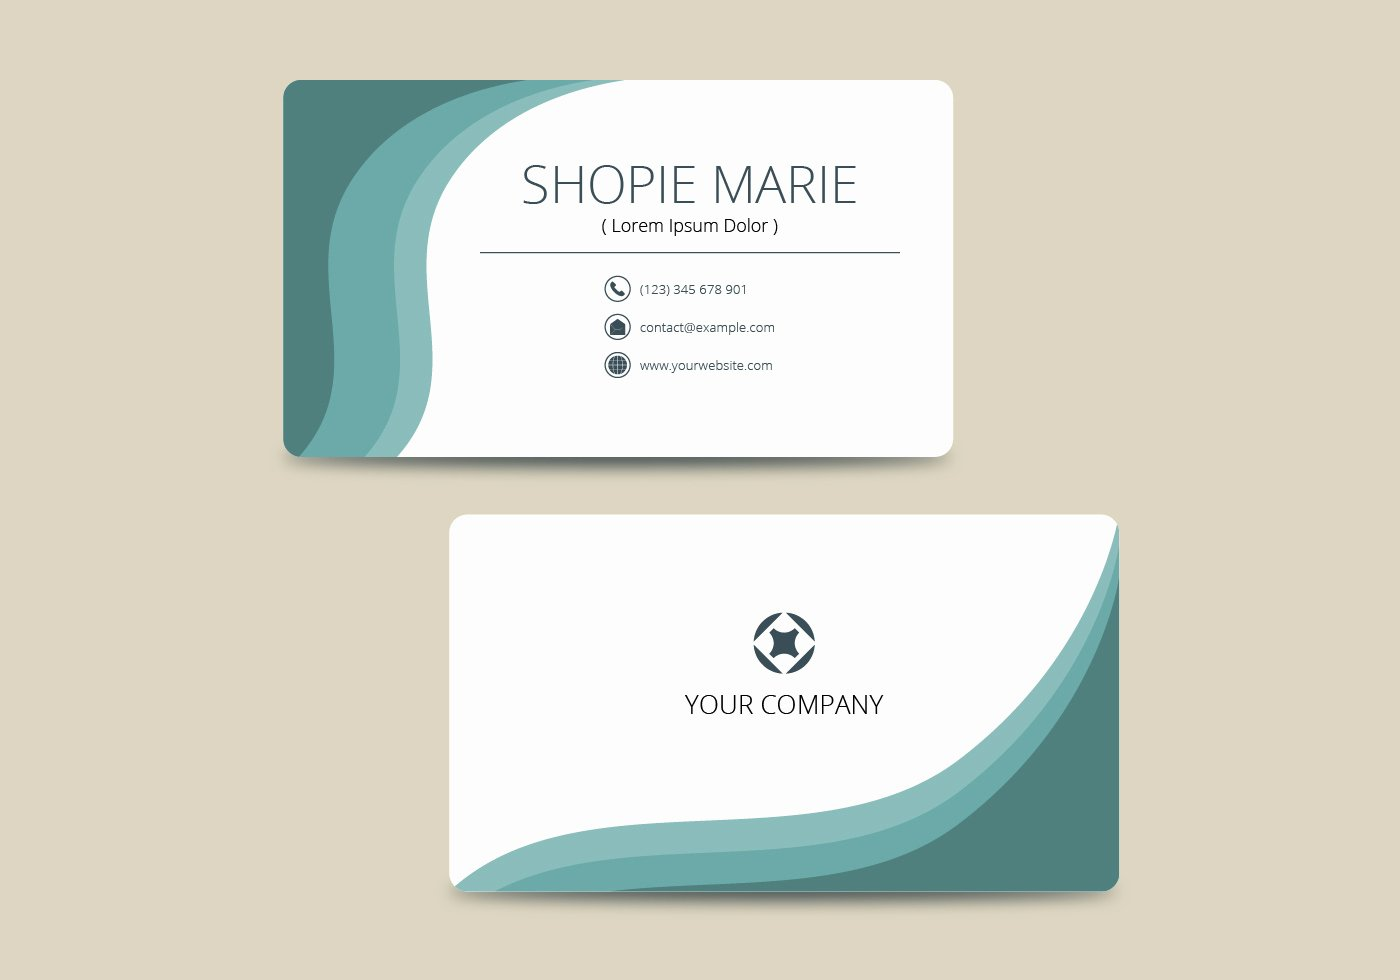 Sample Business Card Template Beautiful Teal Business Card Template Vector Download Free Vector